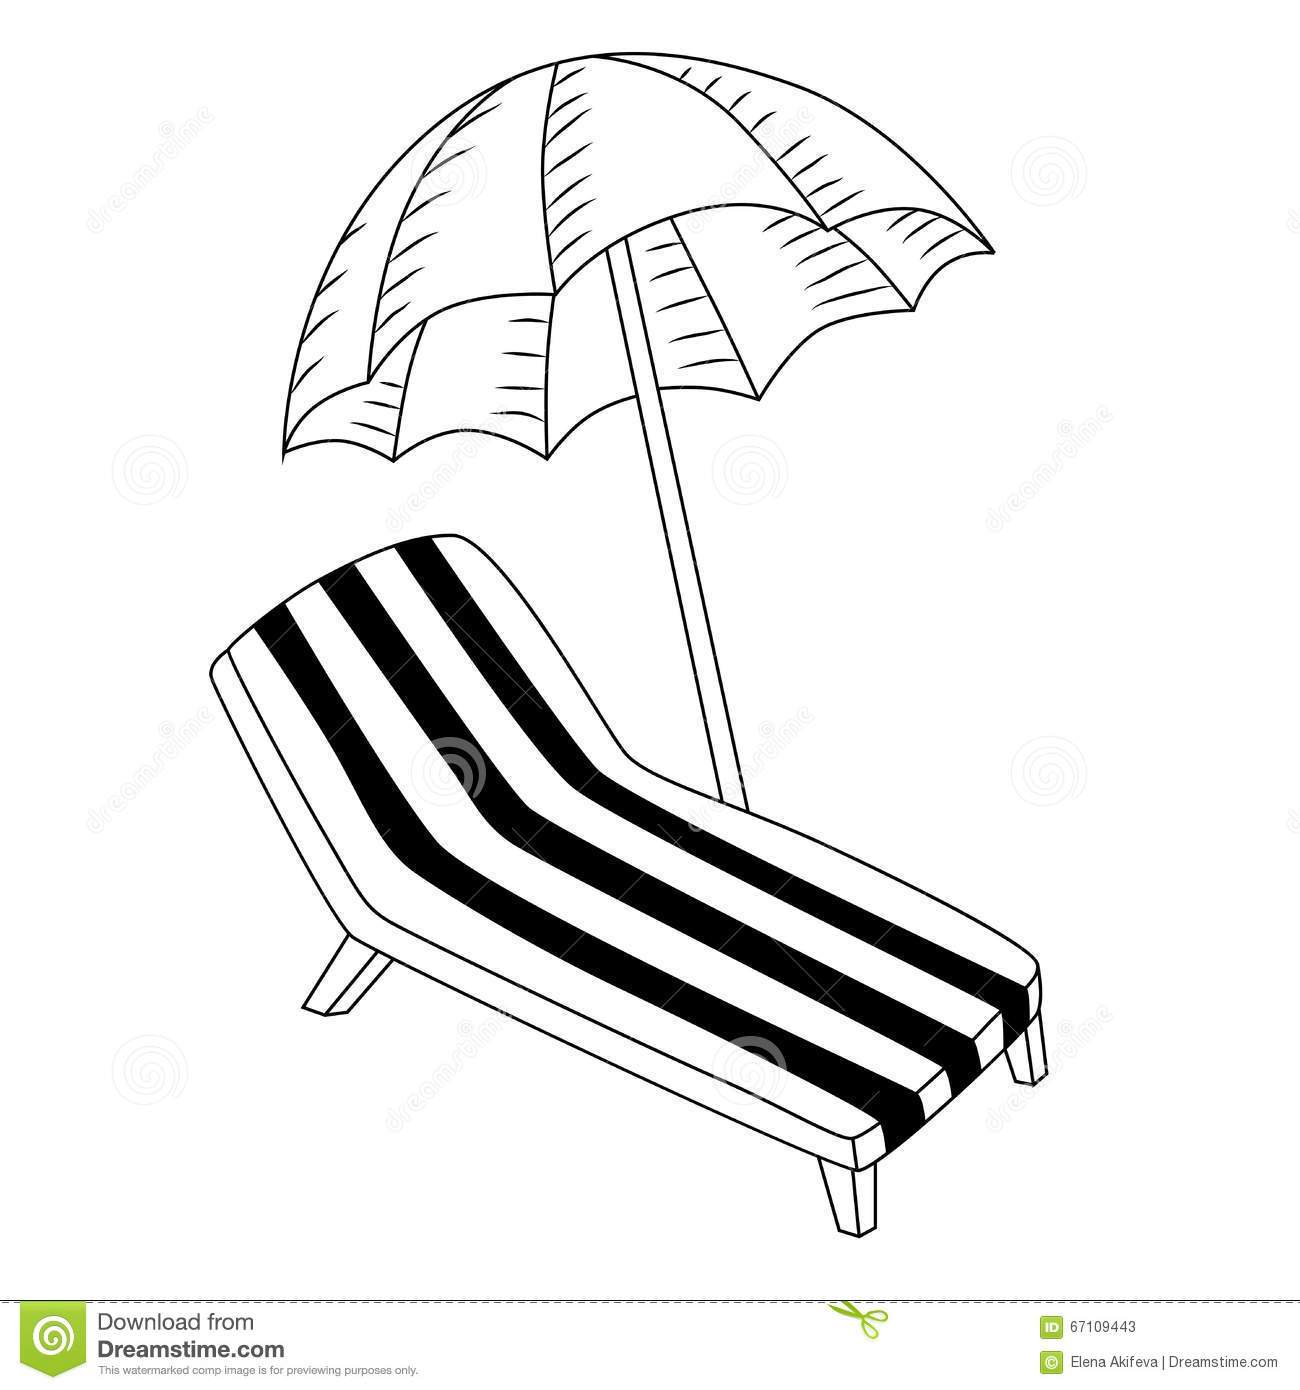 1300x1390 Incredible Surprising How To Draw Closed Umbrella With Coloring